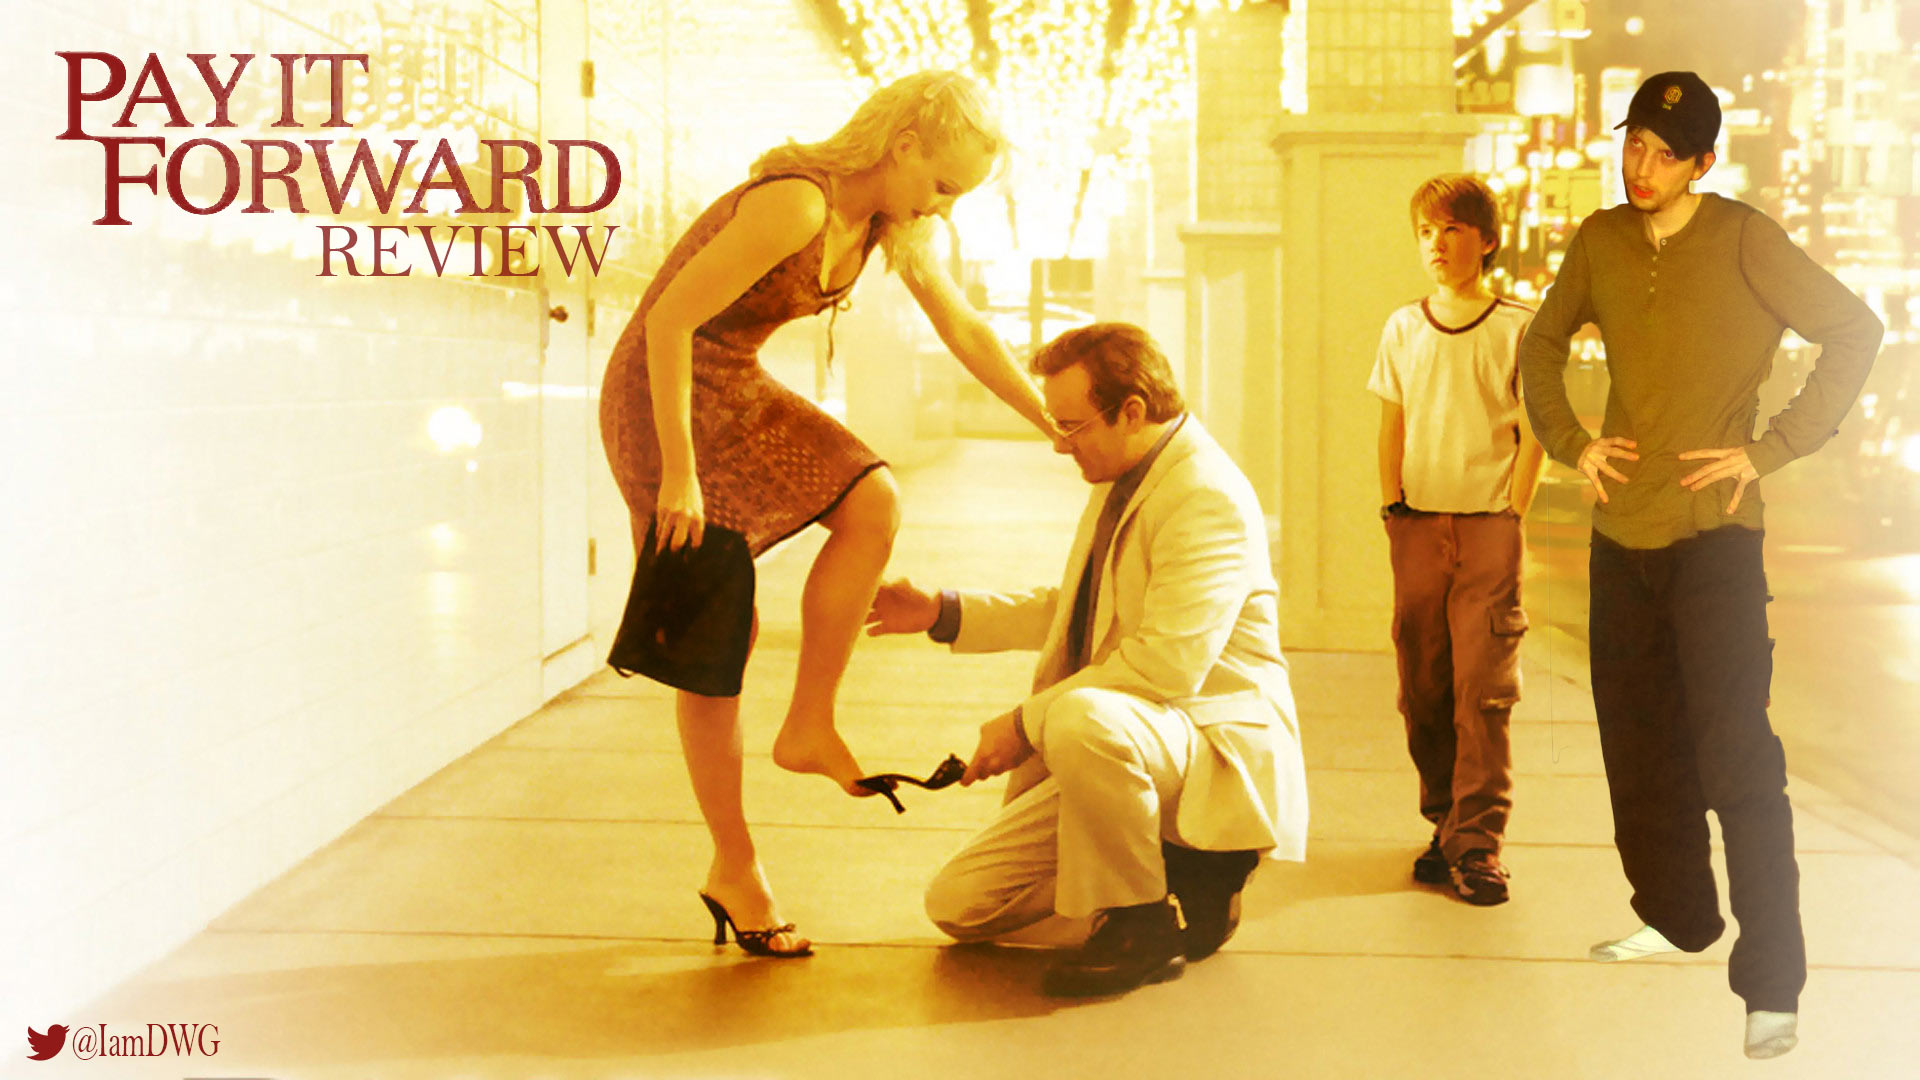 'Pay it Forward' (2000) – Dave Examines Movies